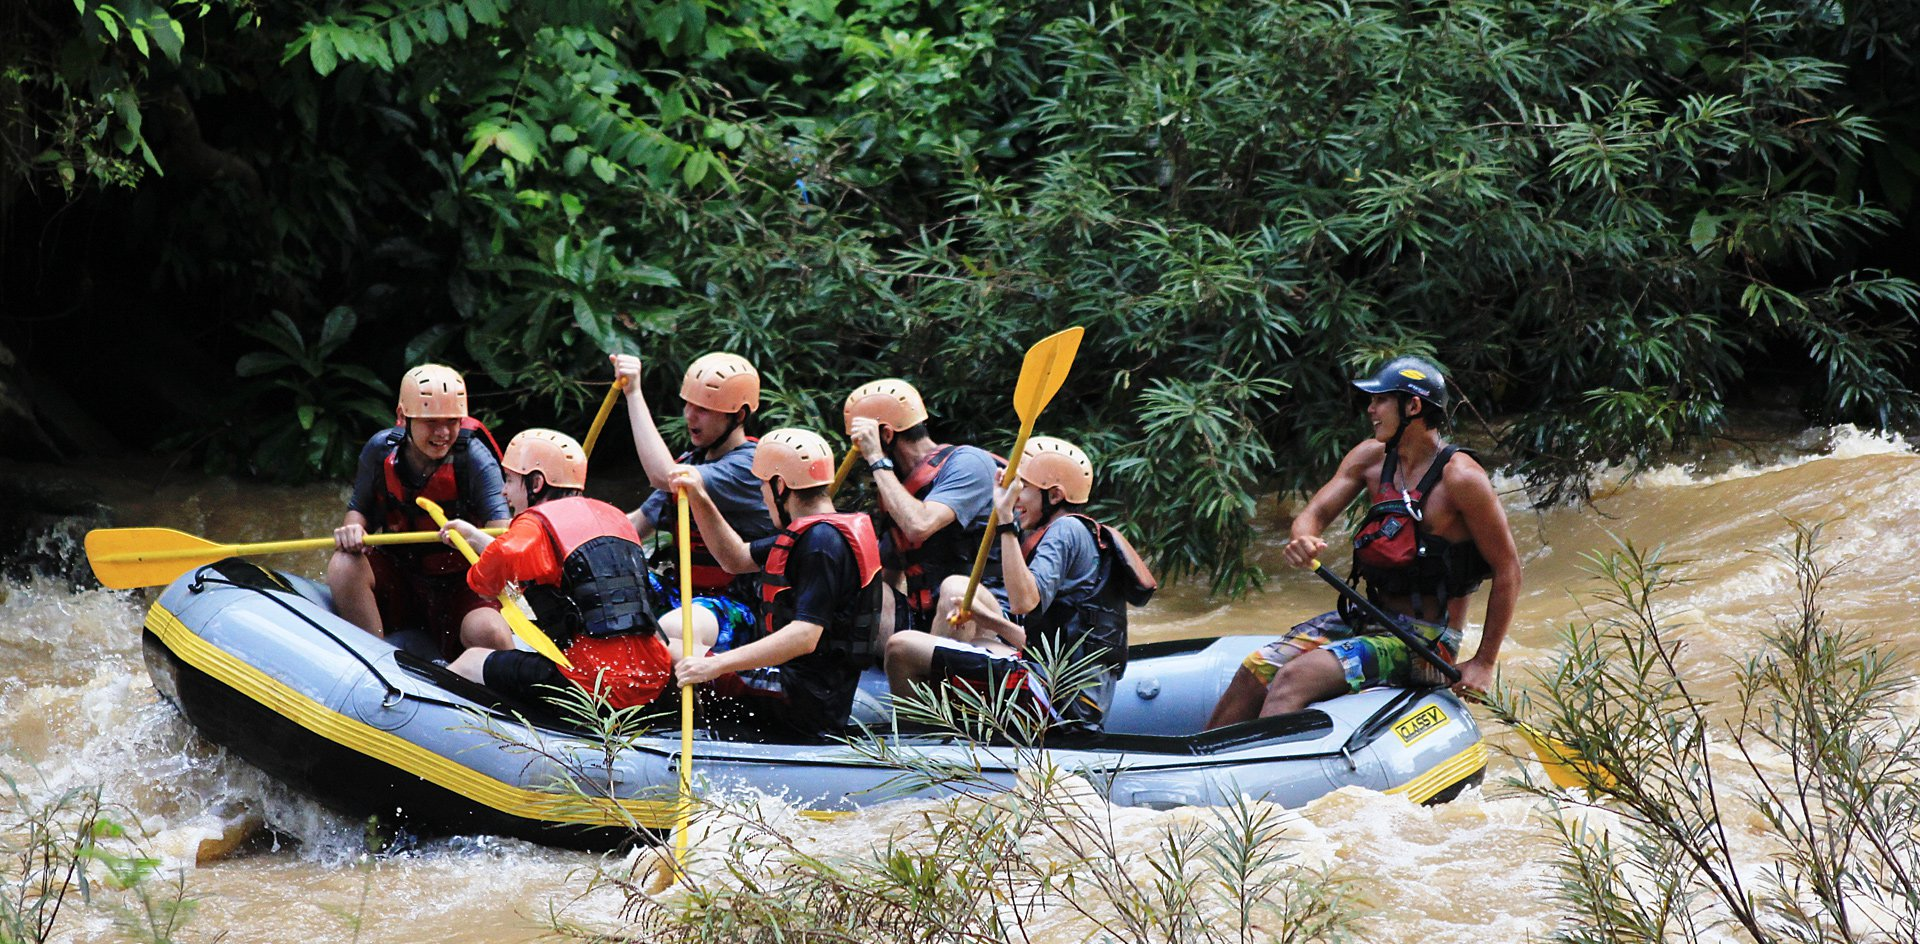 Rafting - Disadvantages of traveling to Thailand in the monsoon season